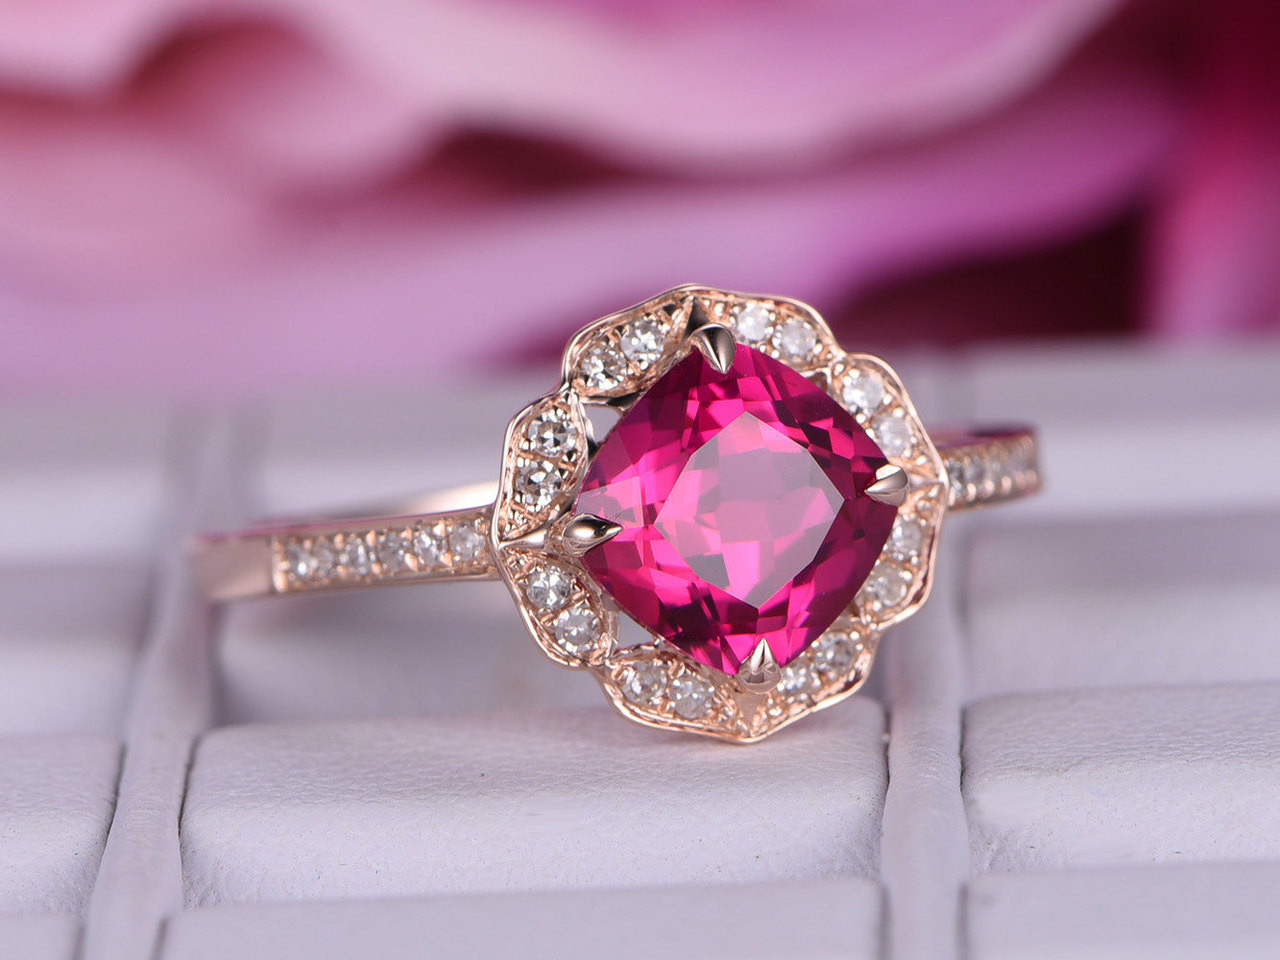 7x7mm Lab-treated Ruby ring with diamond in 14k rose gold/Halo ...